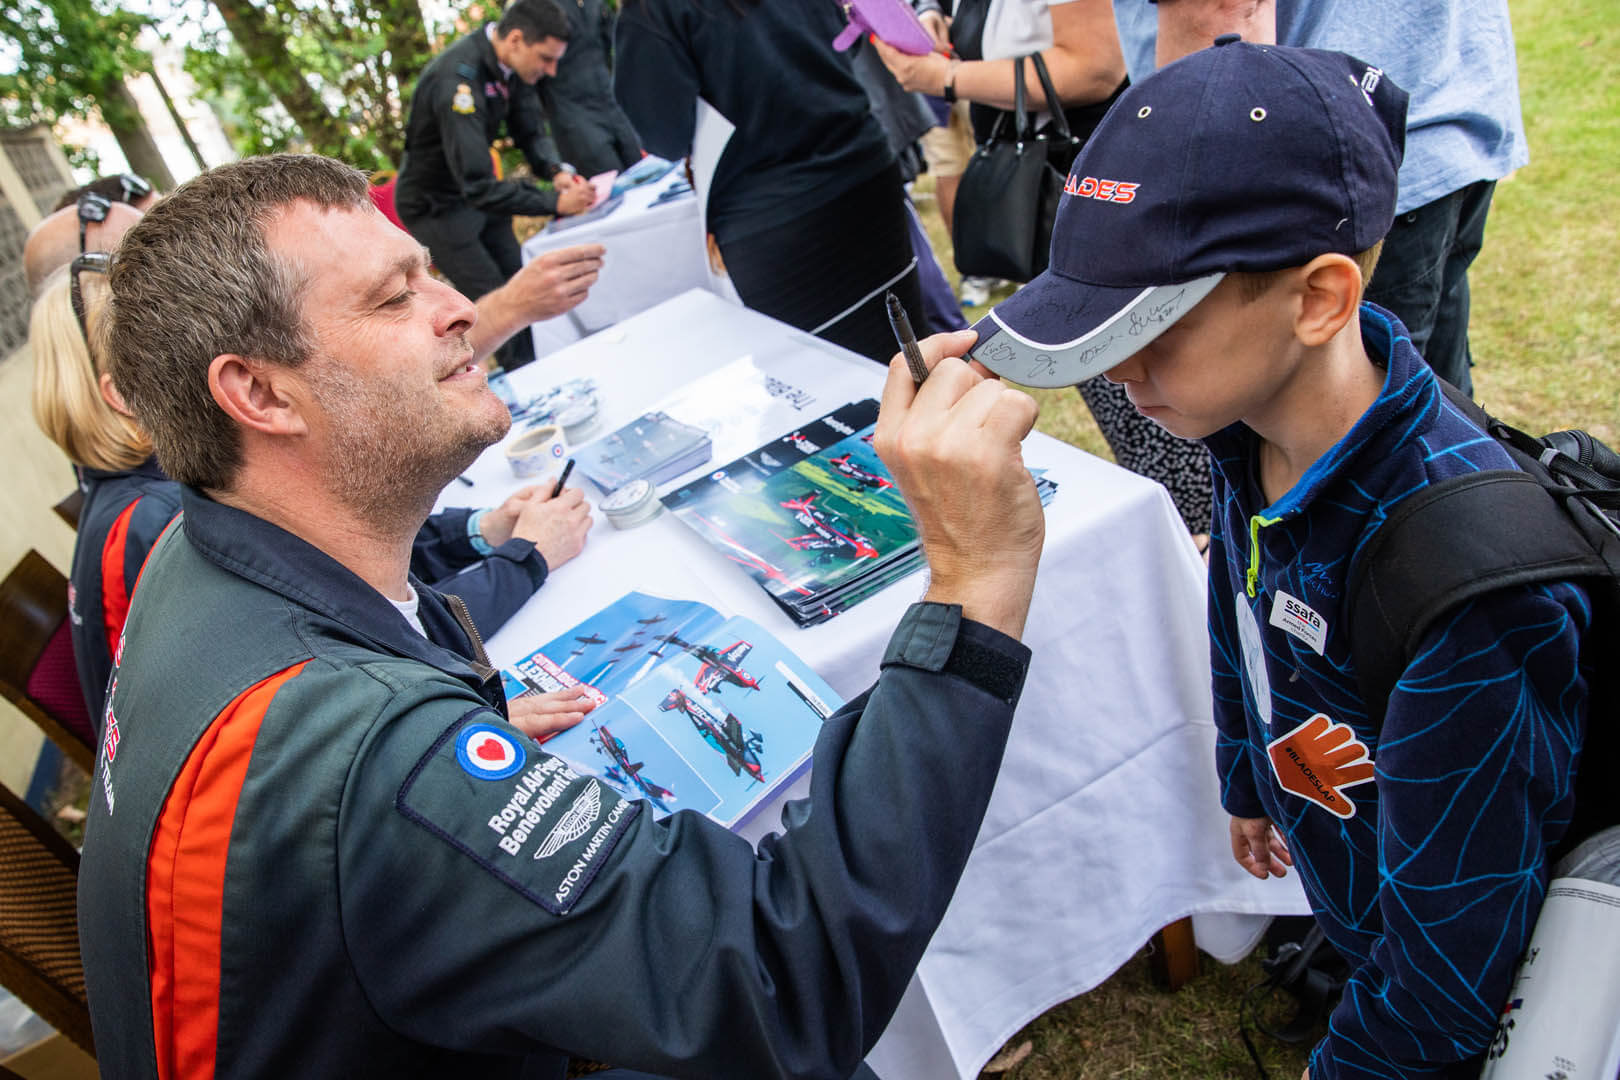 Blade pilot signing a fans hat at the Pilot meet and greet event in Bournemouth